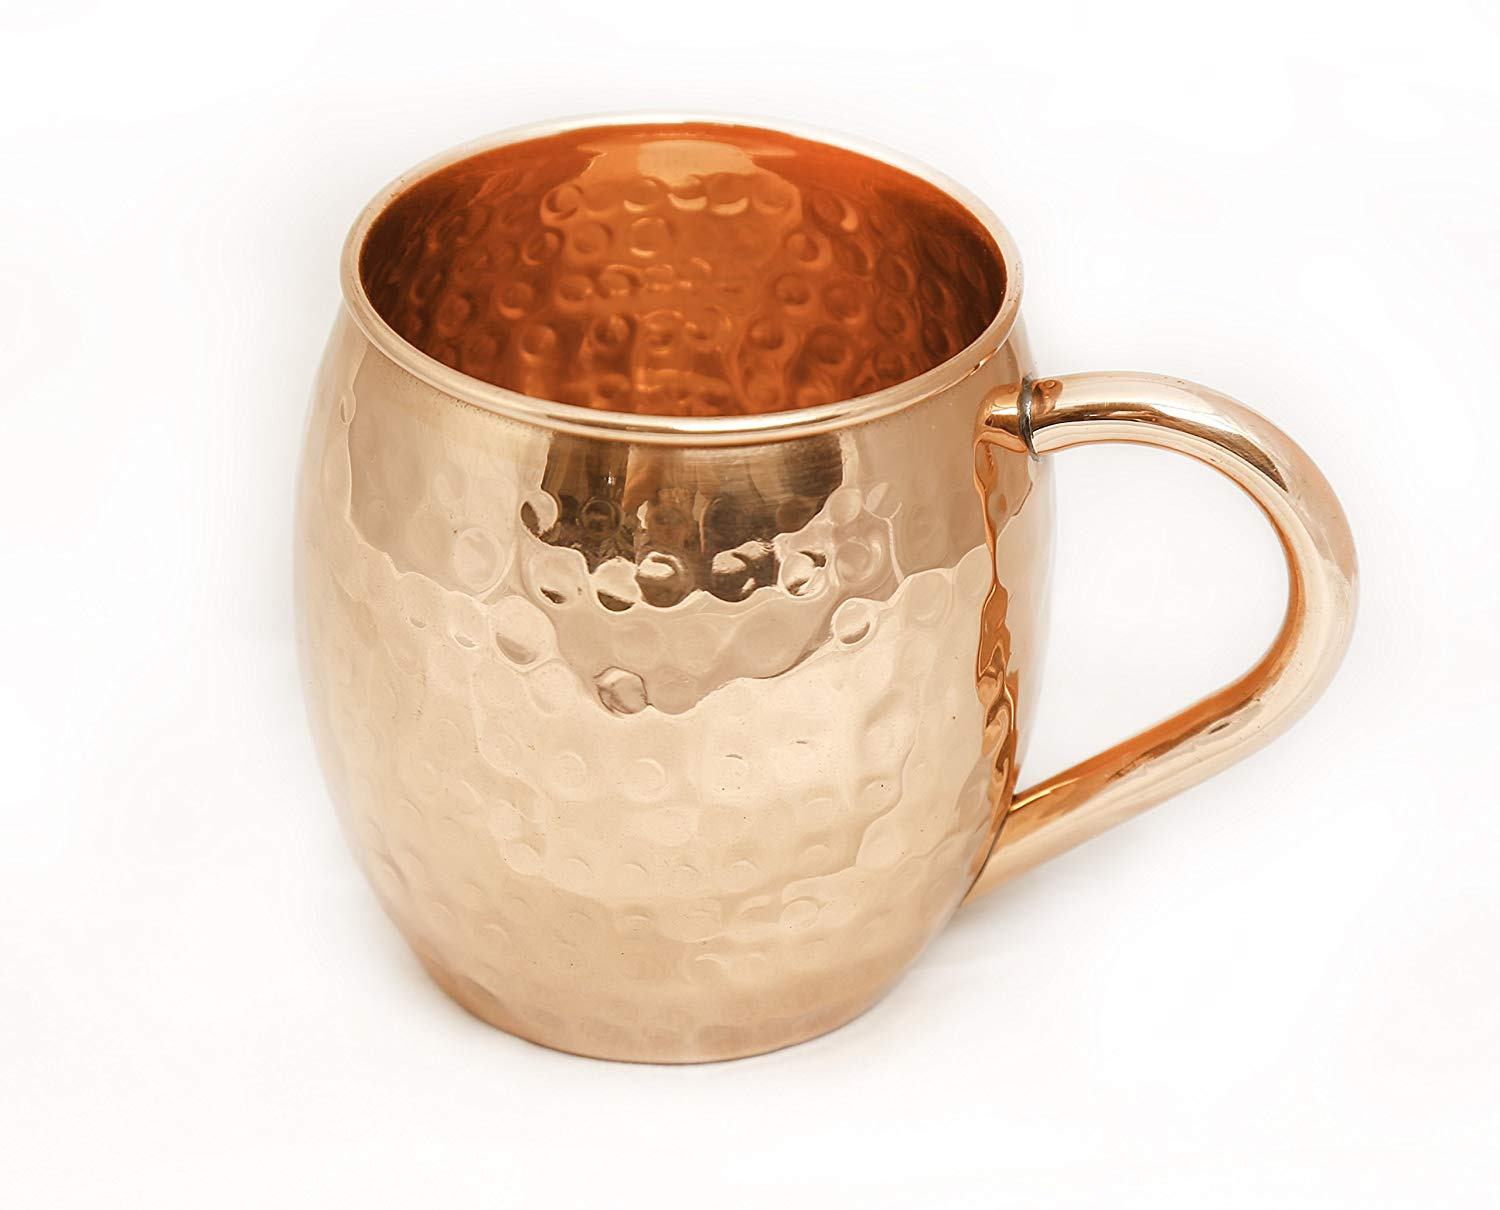 Hammered Copper Moscow Mule Mug - 100% Solid Pure Copper Handmade Tumbler, 16 Oz Capacity No Inner Linings Drinking Cup for Moscow Mule, Cocktail and Cold Drinks